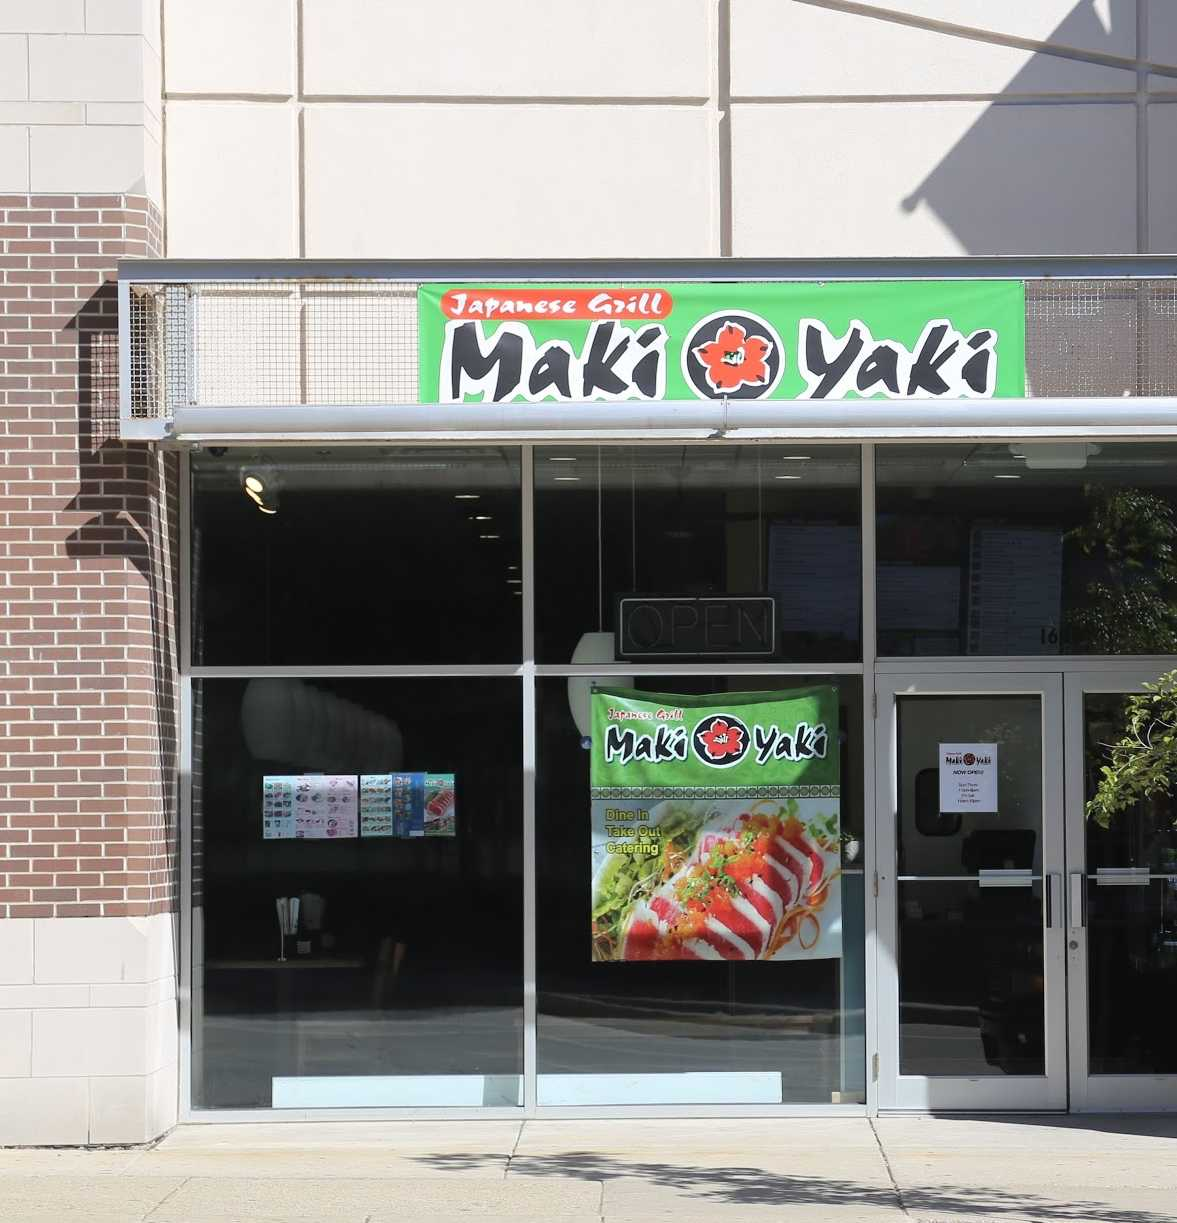 Maki Yaki Japanese Grill caters to students' appetites through low prices and prime on campus location.